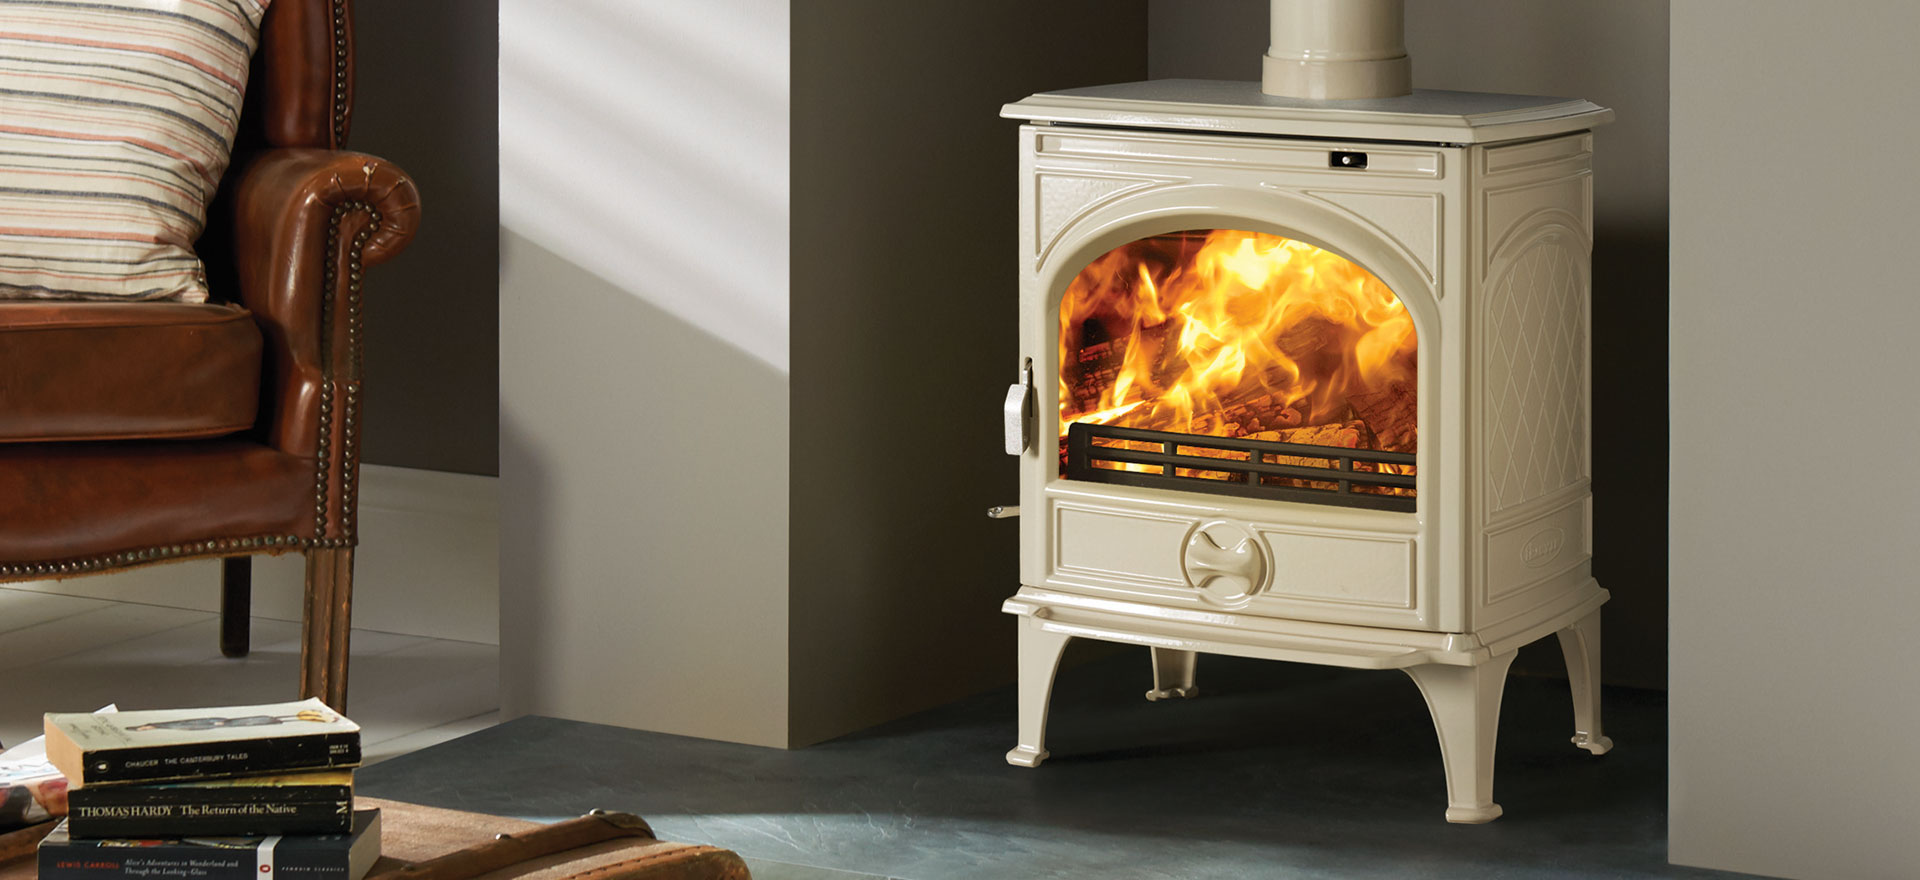 Looking for a traditional woodburner?